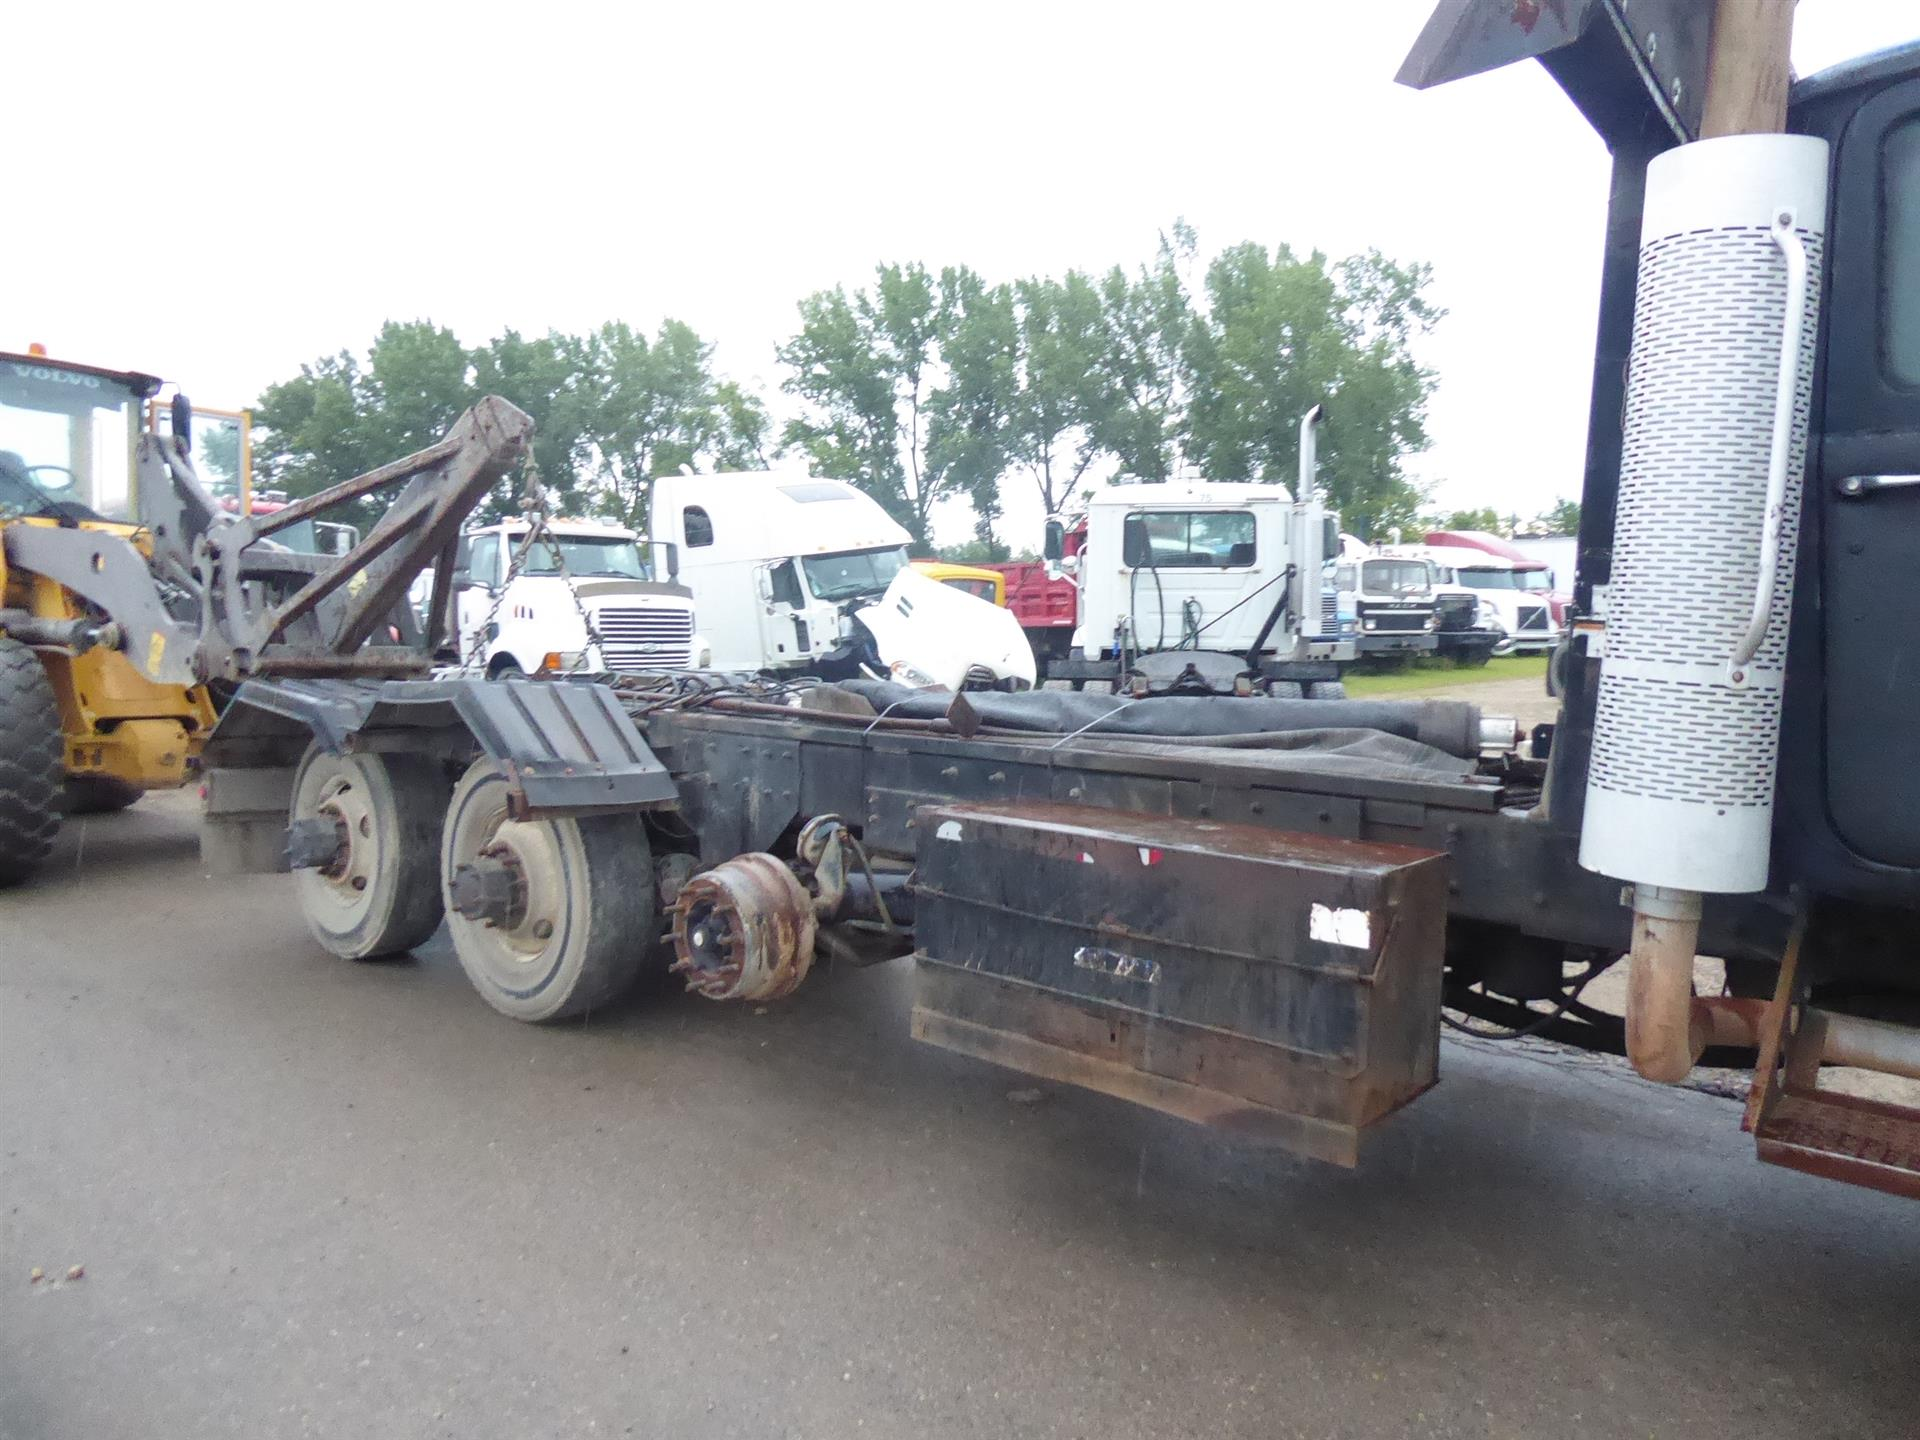 2001 Mack rd688s for sale-59289657